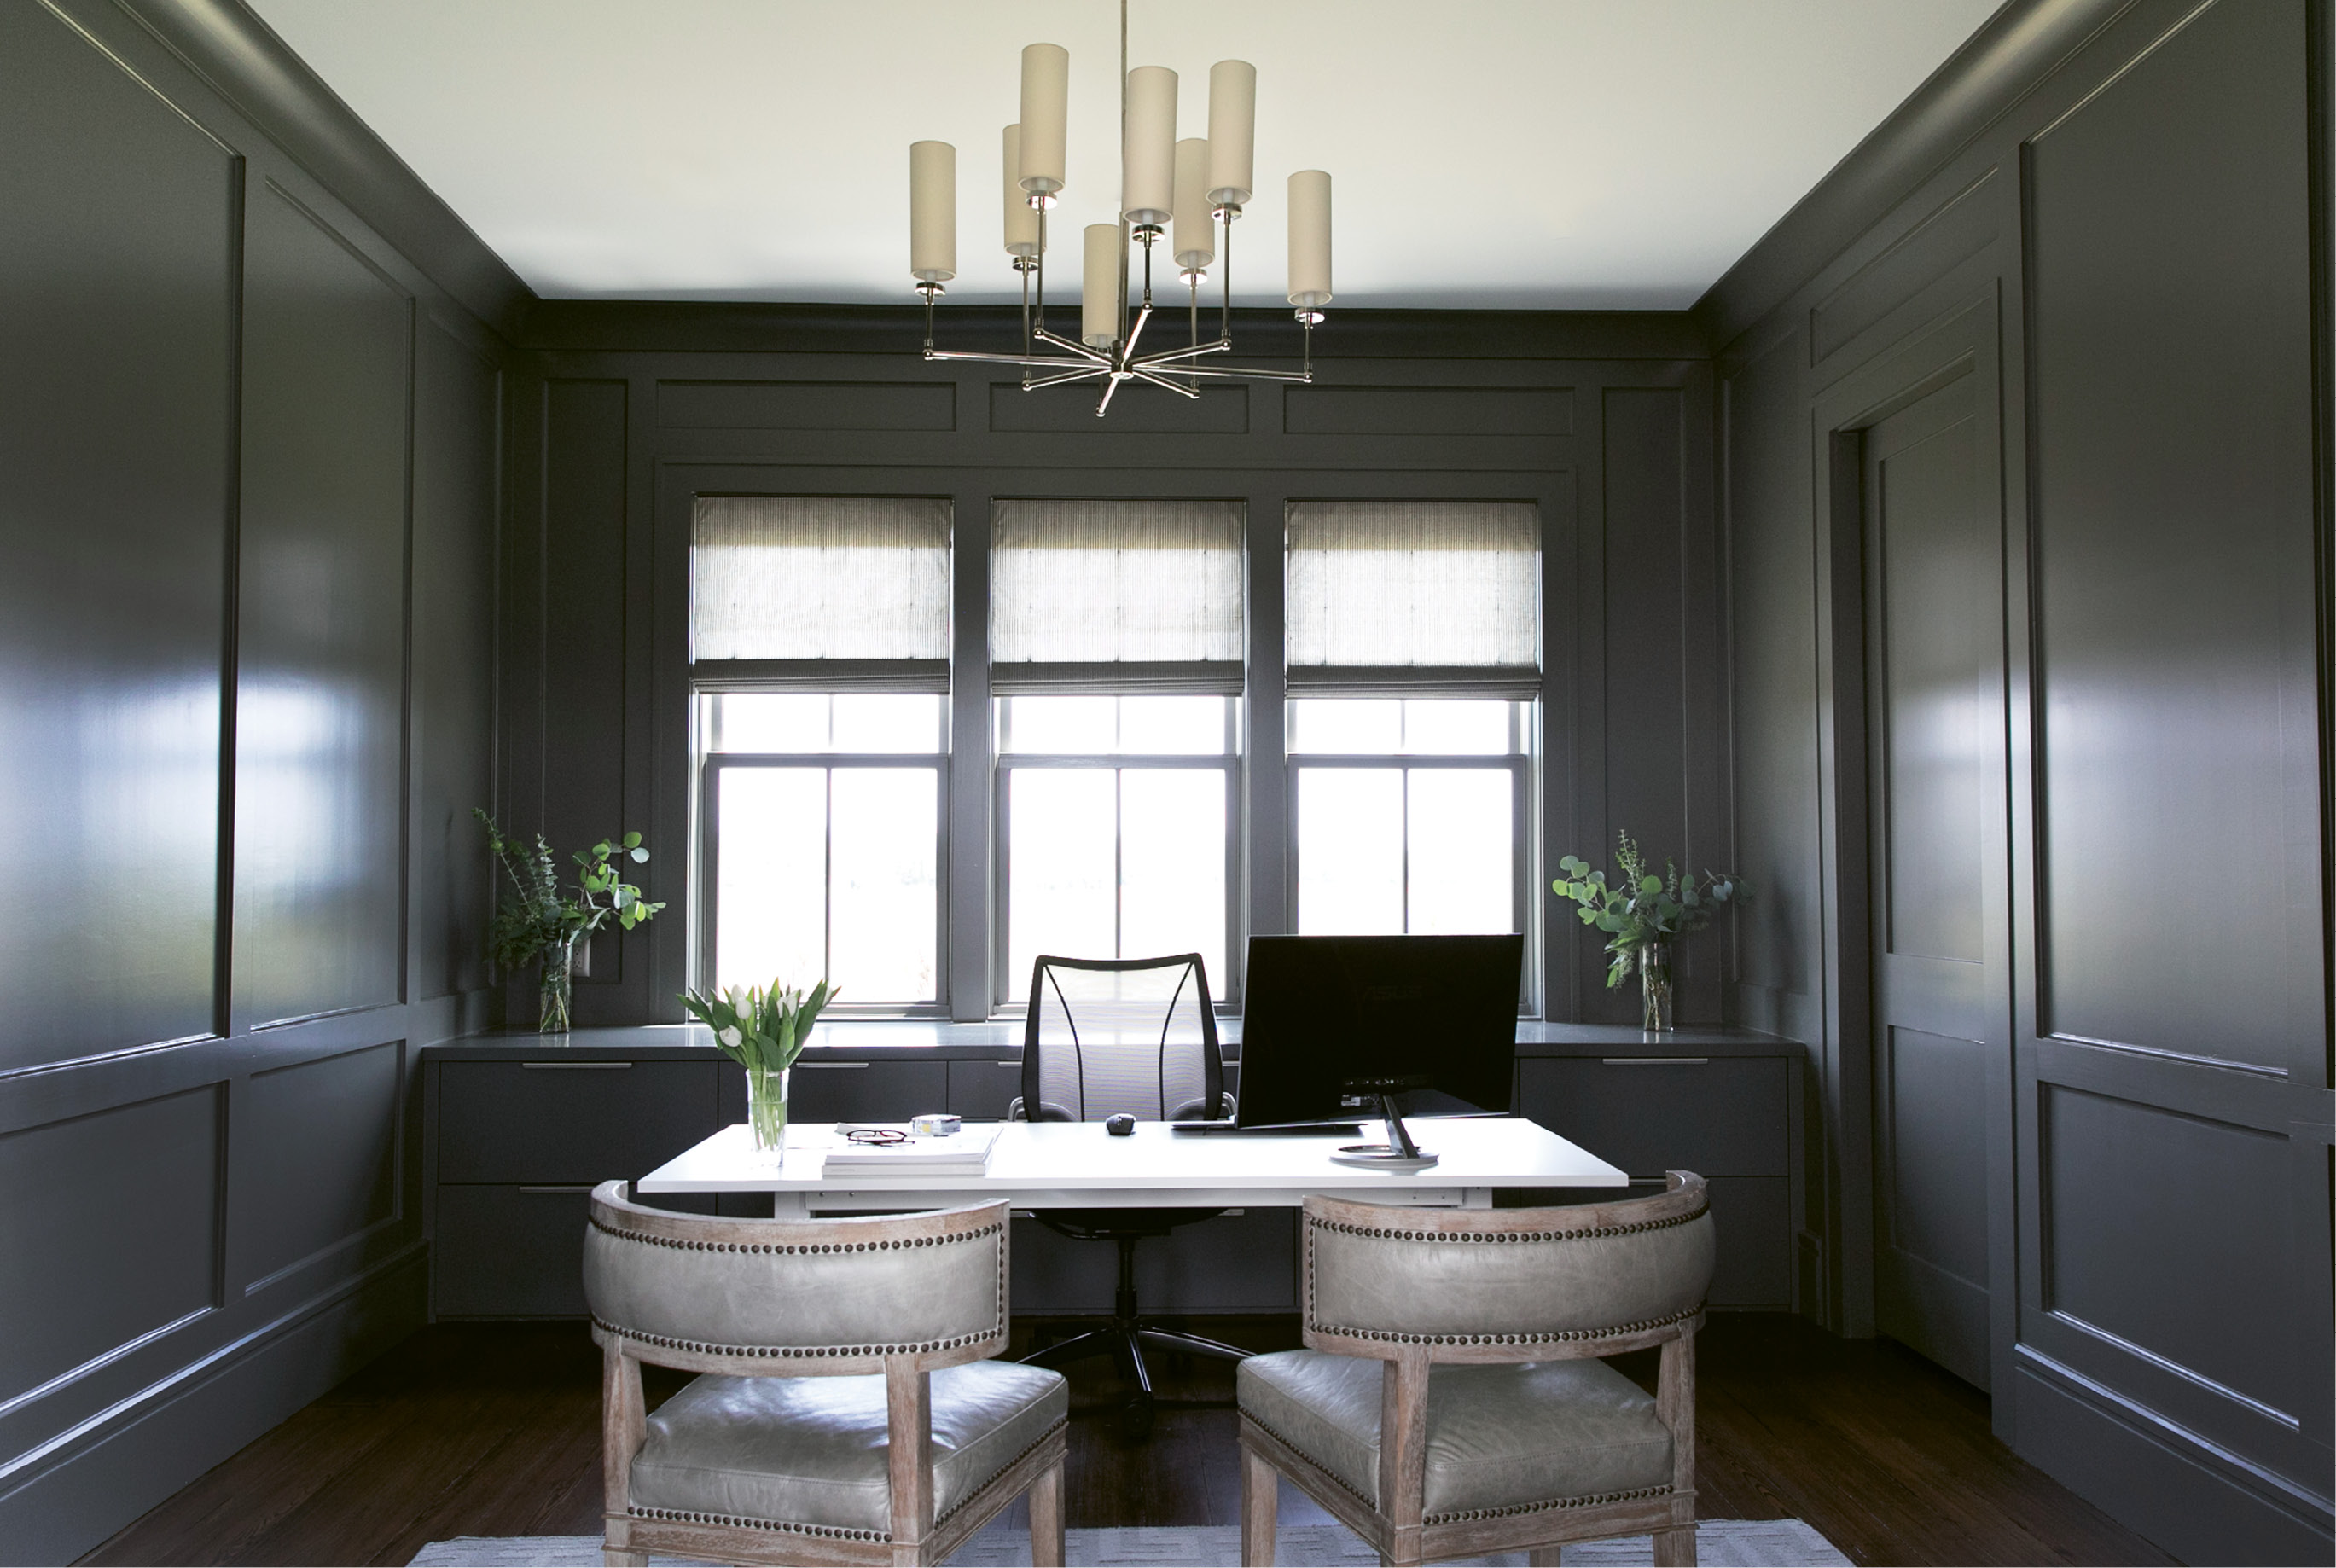 Dark grey walls cultivate a sense of calm and visually separate her work zone from the rest of the home.